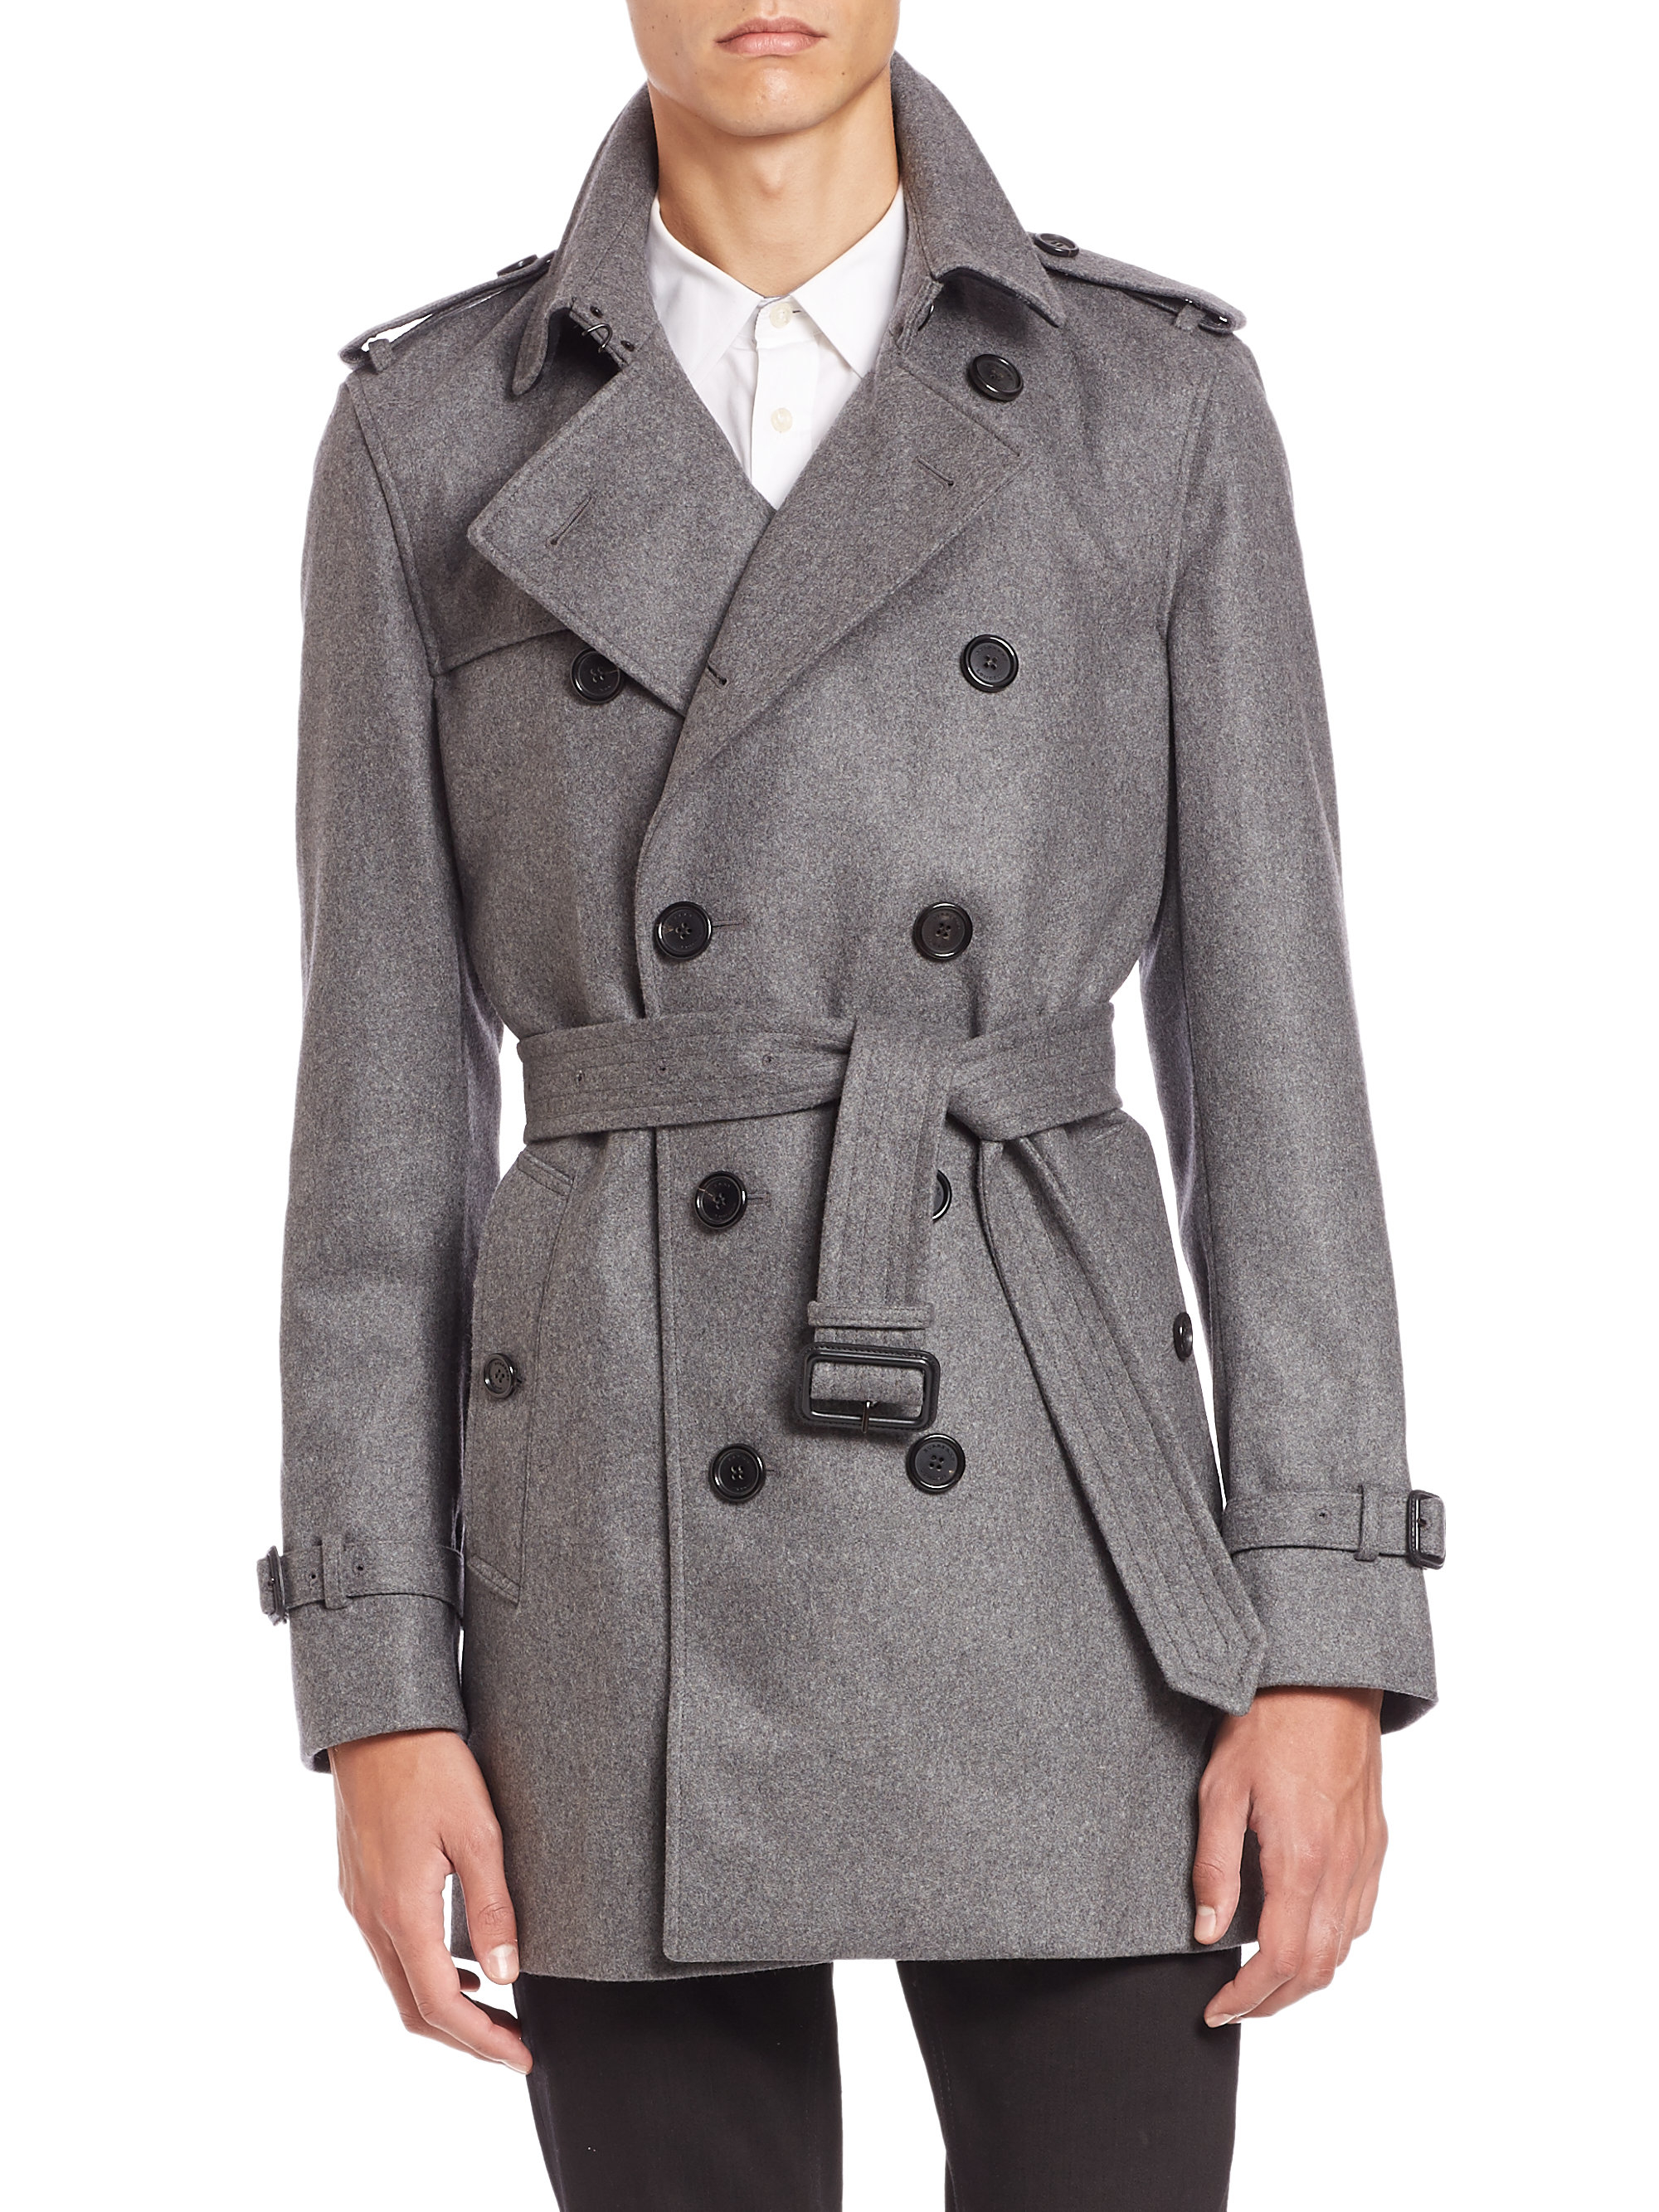 Vintage Gray Men's Trench Coat Gray Double Breasted Trench Coat Men's Classic Men's Coat Large Size VintageSuggestion. 5 out of 5 stars () $ $ $ (10% off Did you scroll all this way to get facts about gray mens trenchcoat? Well you're in luck, because here they come.